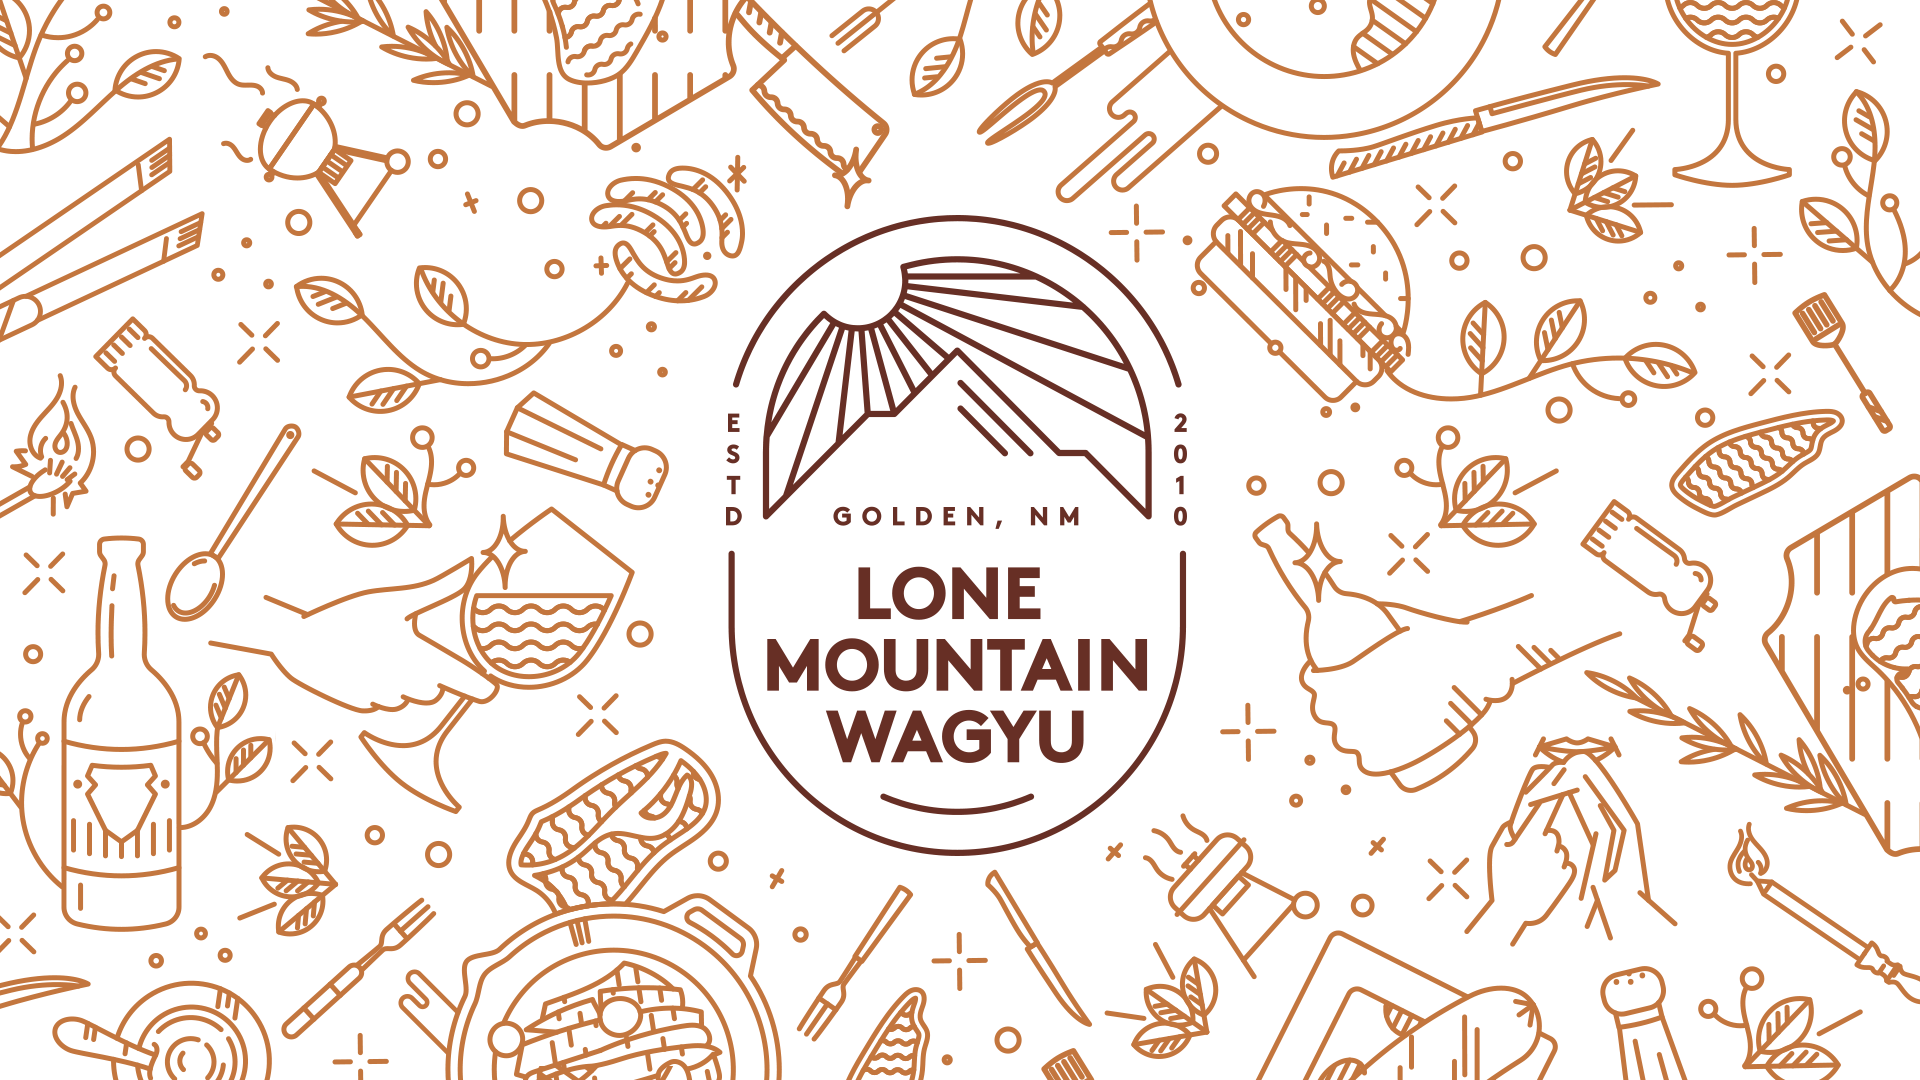 Eat Life to the Fullest branding for Lone Mountain Wagyu by Tom Morhous and Remo+Oob, Ltd.